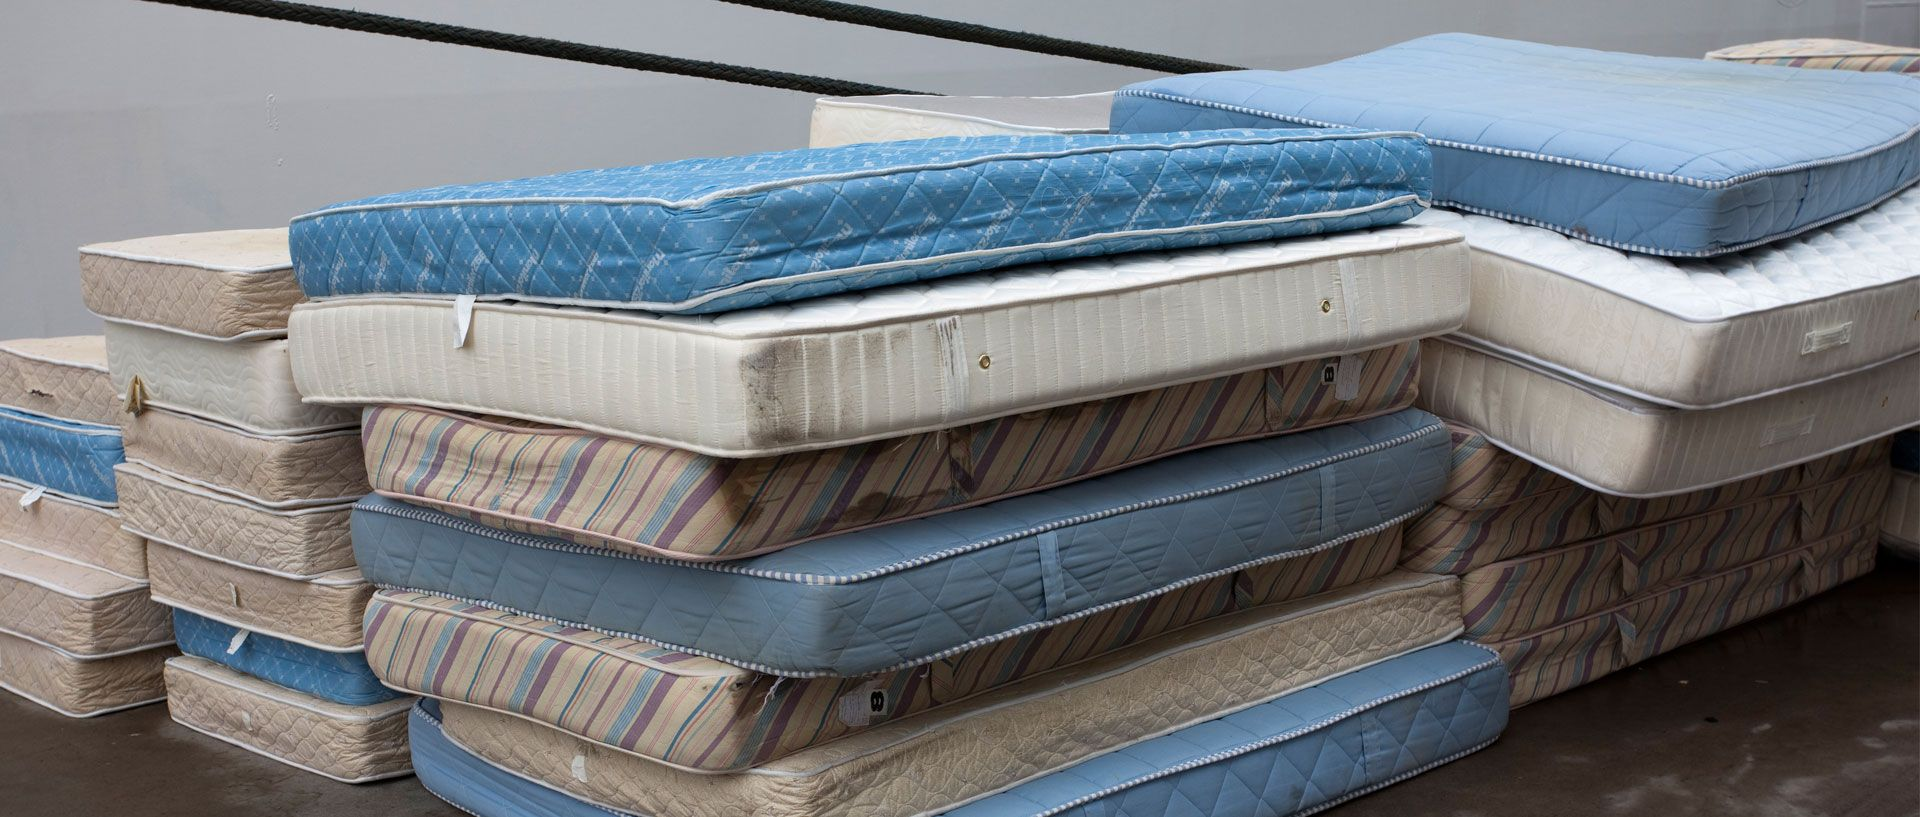 Mattress Recycling Is Easier Than You Think Mattress